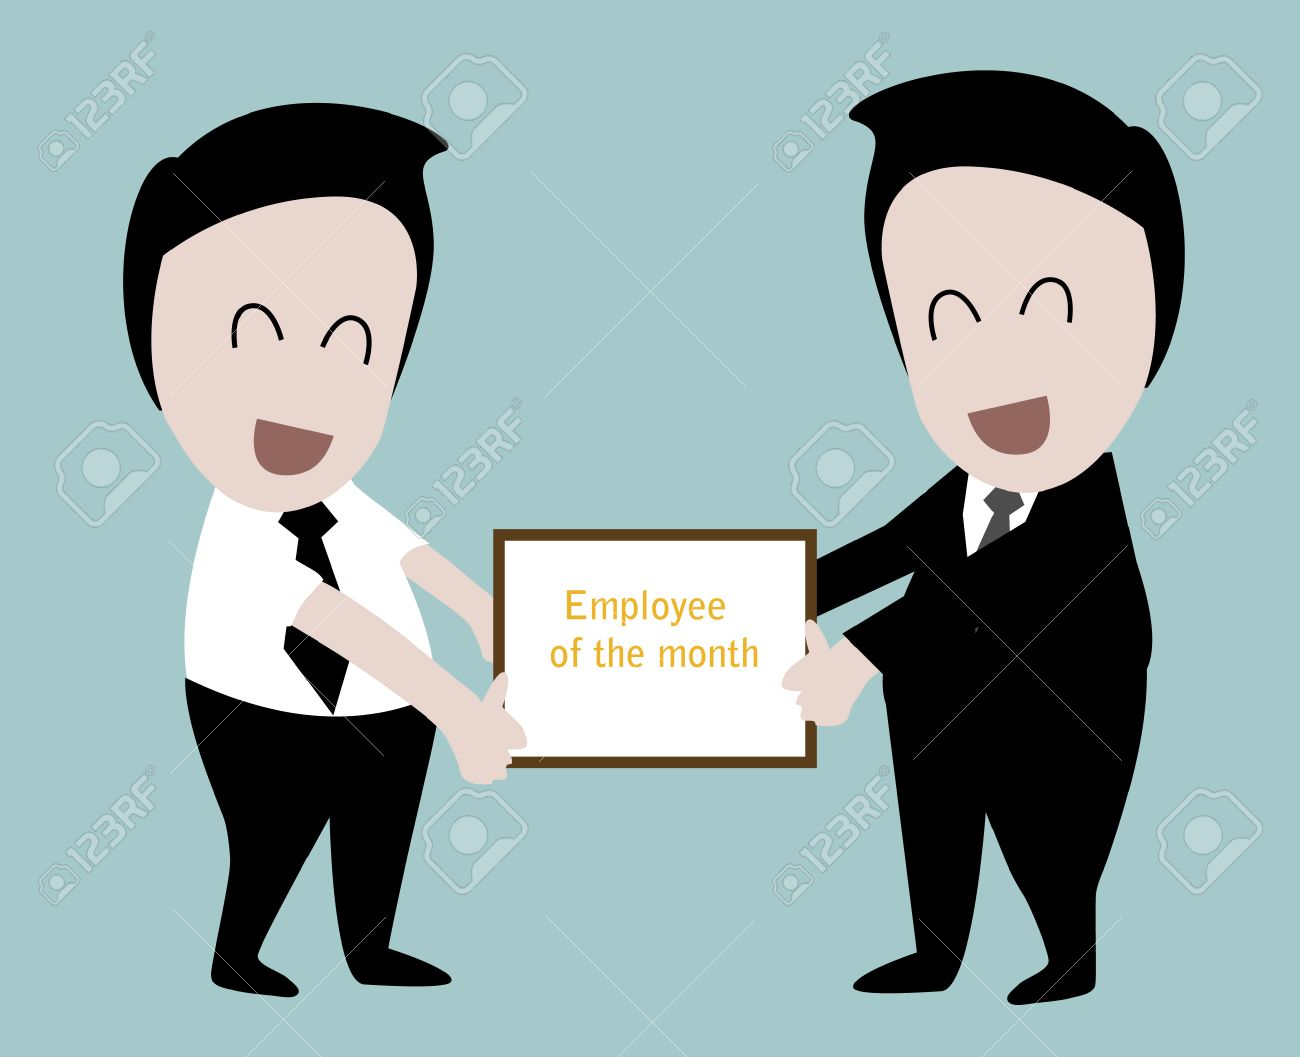 Employee Of The Month Royalty Free Cliparts, Vectors, And Stock ...